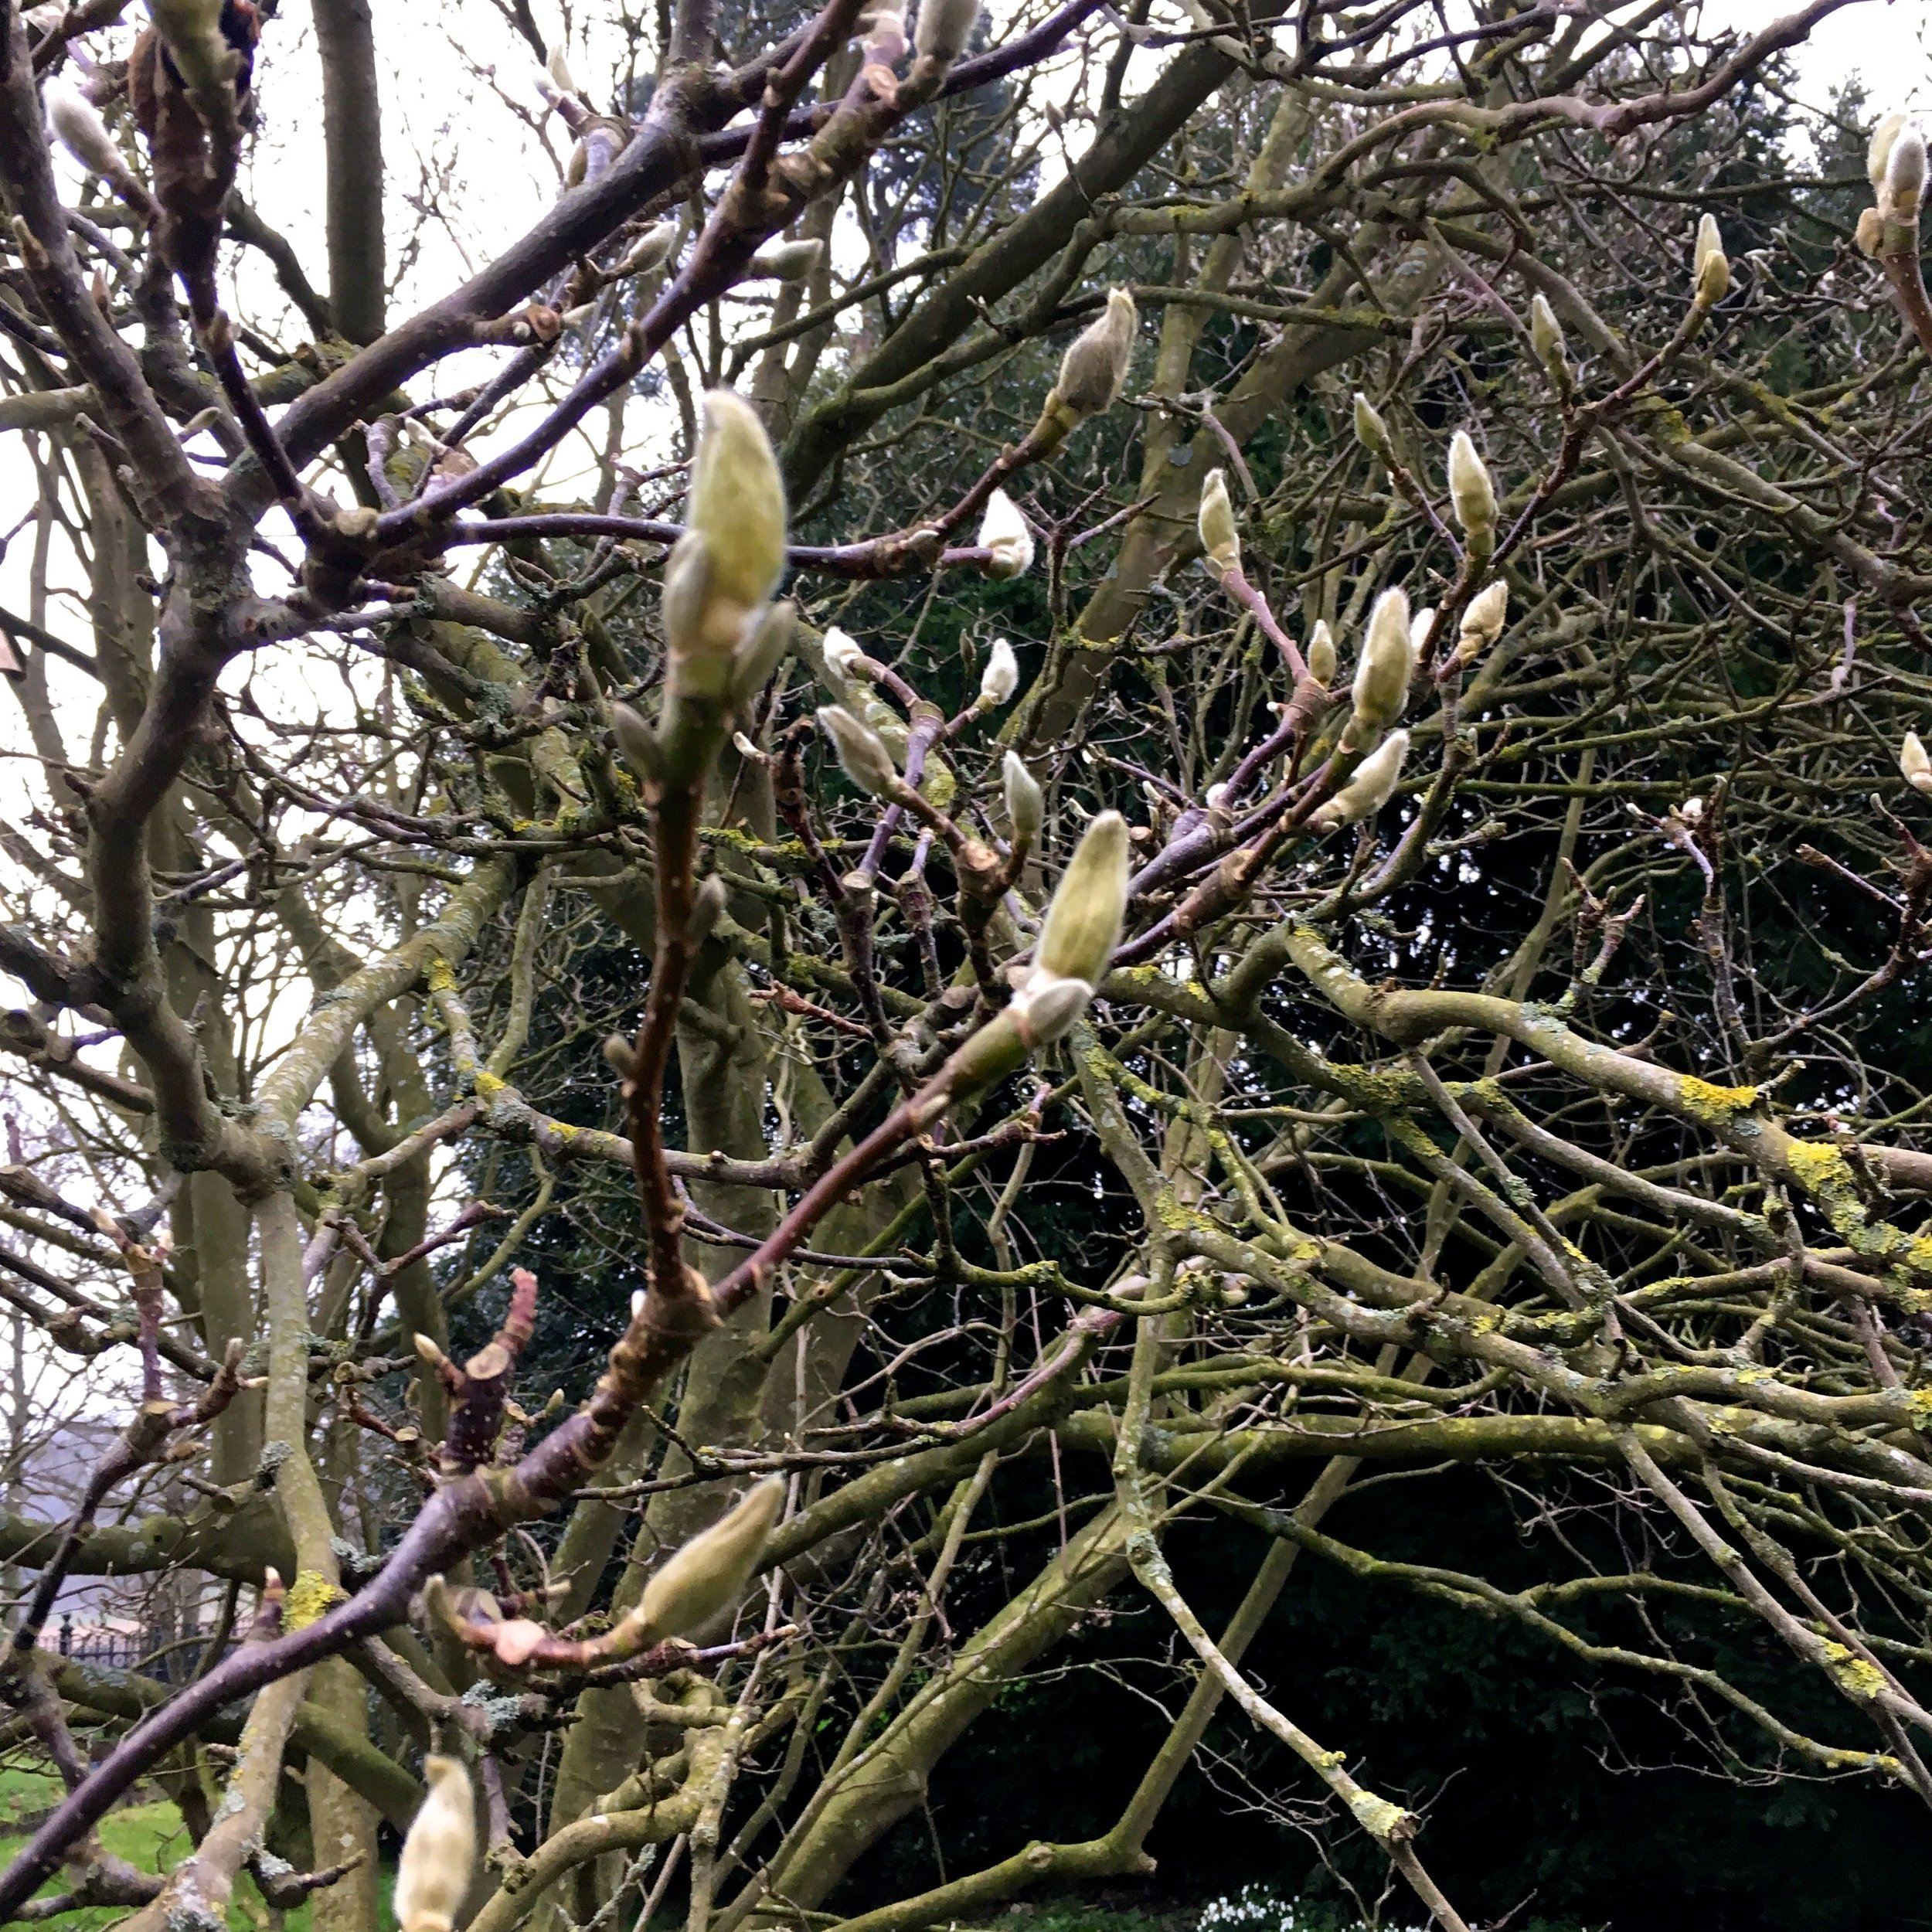 The magnolia tree is in bud at Blickling in Norfolk